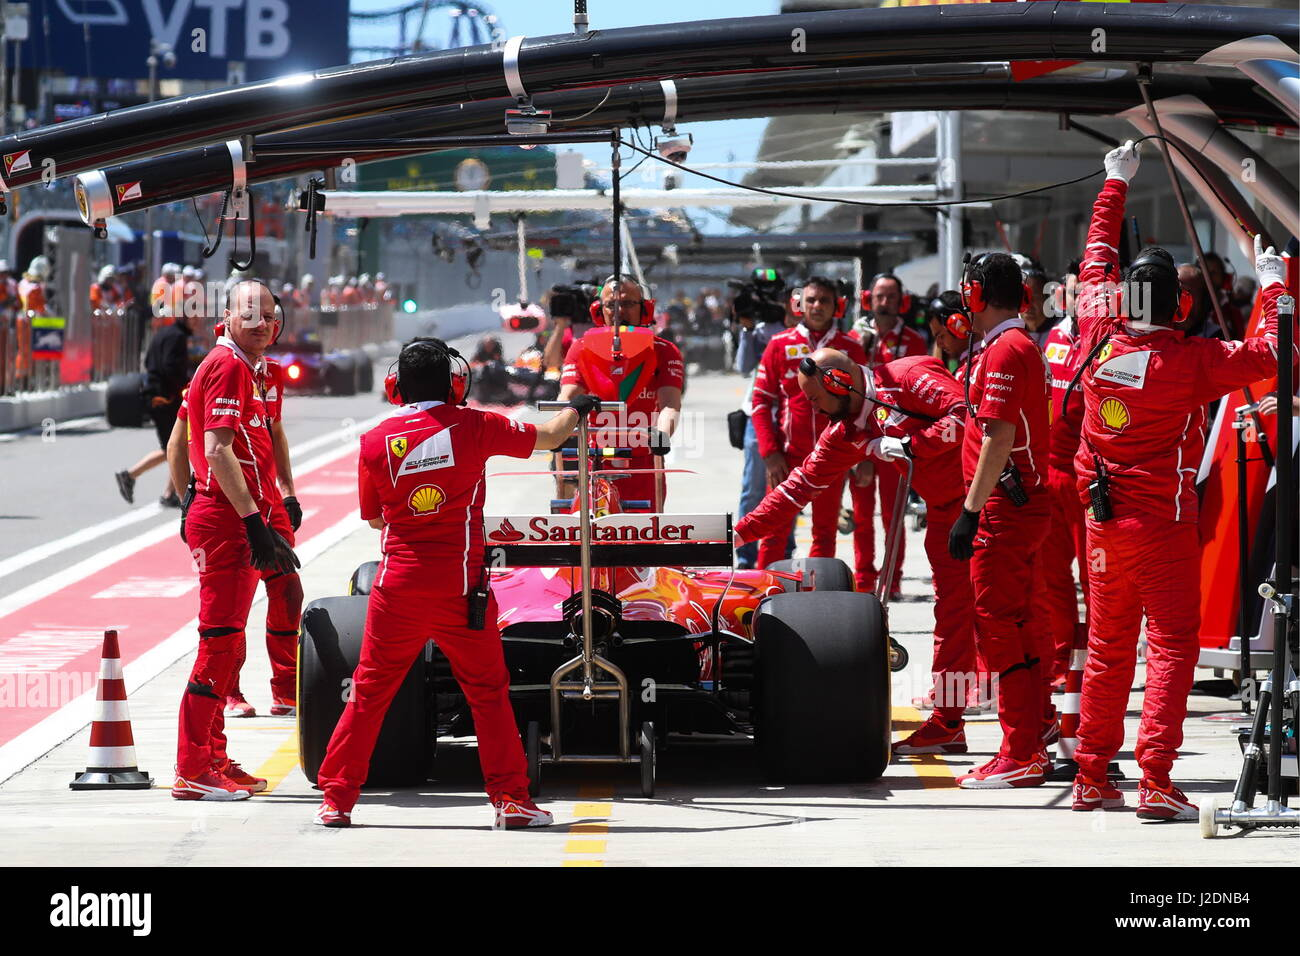 Sochi, Russie. Apr 28, 2017. La Scuderia Ferrari F1 Team pratique mécanique vu lors d'une session avant Photo Stock